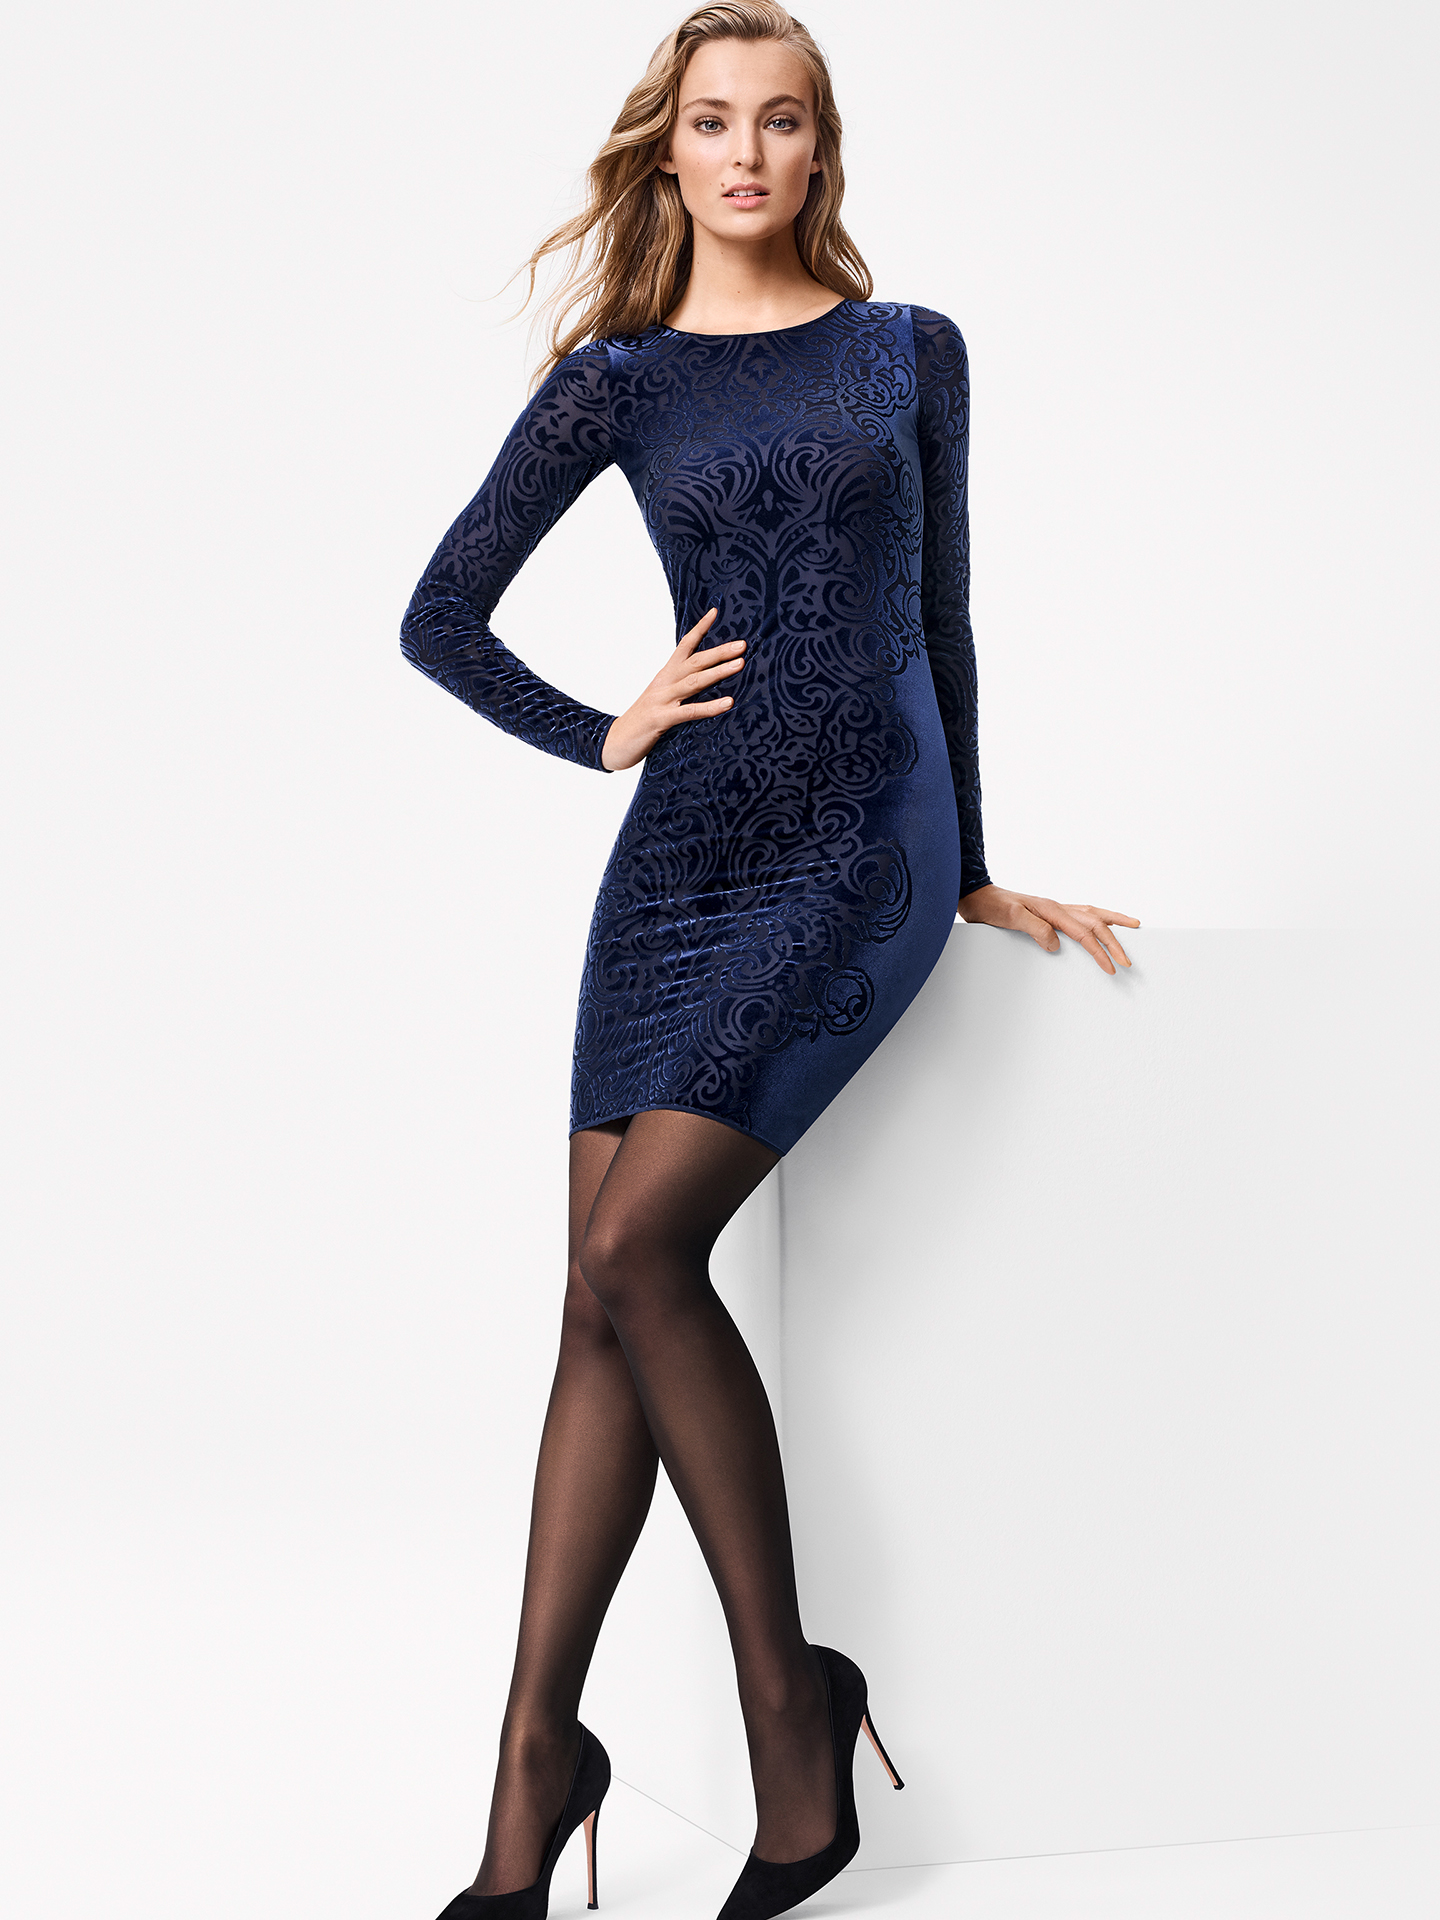 Soft elegance: The decorated effect at the front and on the sleeves is made from a wonderfully soft devoré velvet and makes the dress a versatile and feminine eye-catcher. The small crew neck, figure-hugging fit and over-knee cut highlight the feminine look. The front section is lined in light beige and the cuffs have high-quality ridging.